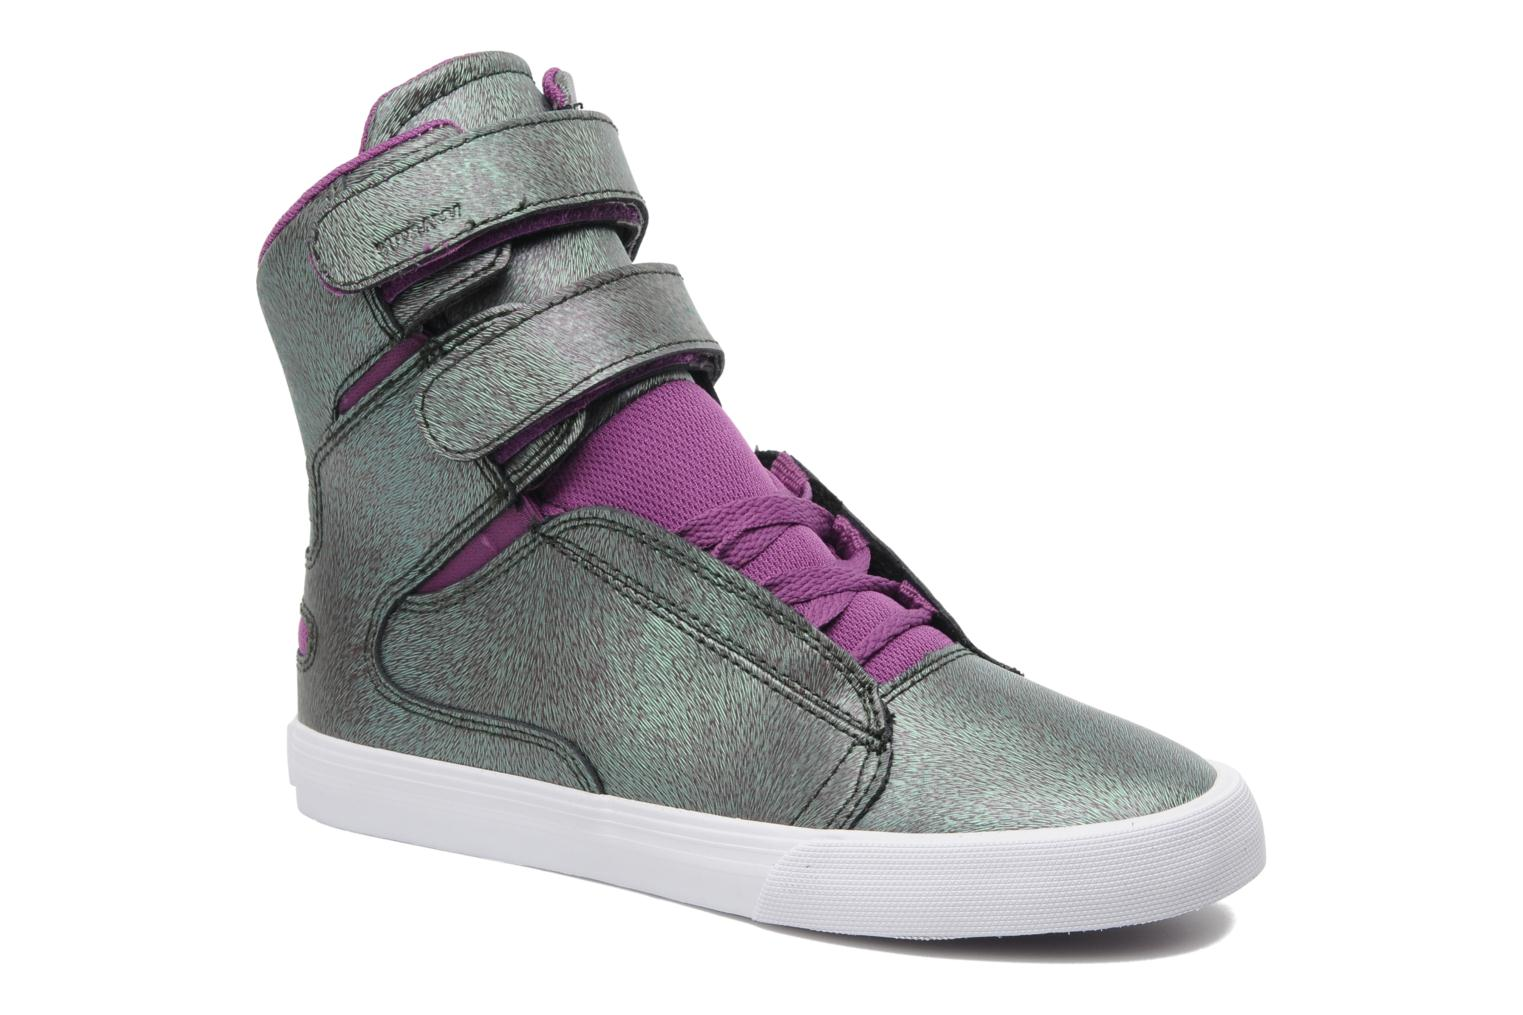 Marques Chaussure femme Supra femme Society w Orchid Flower